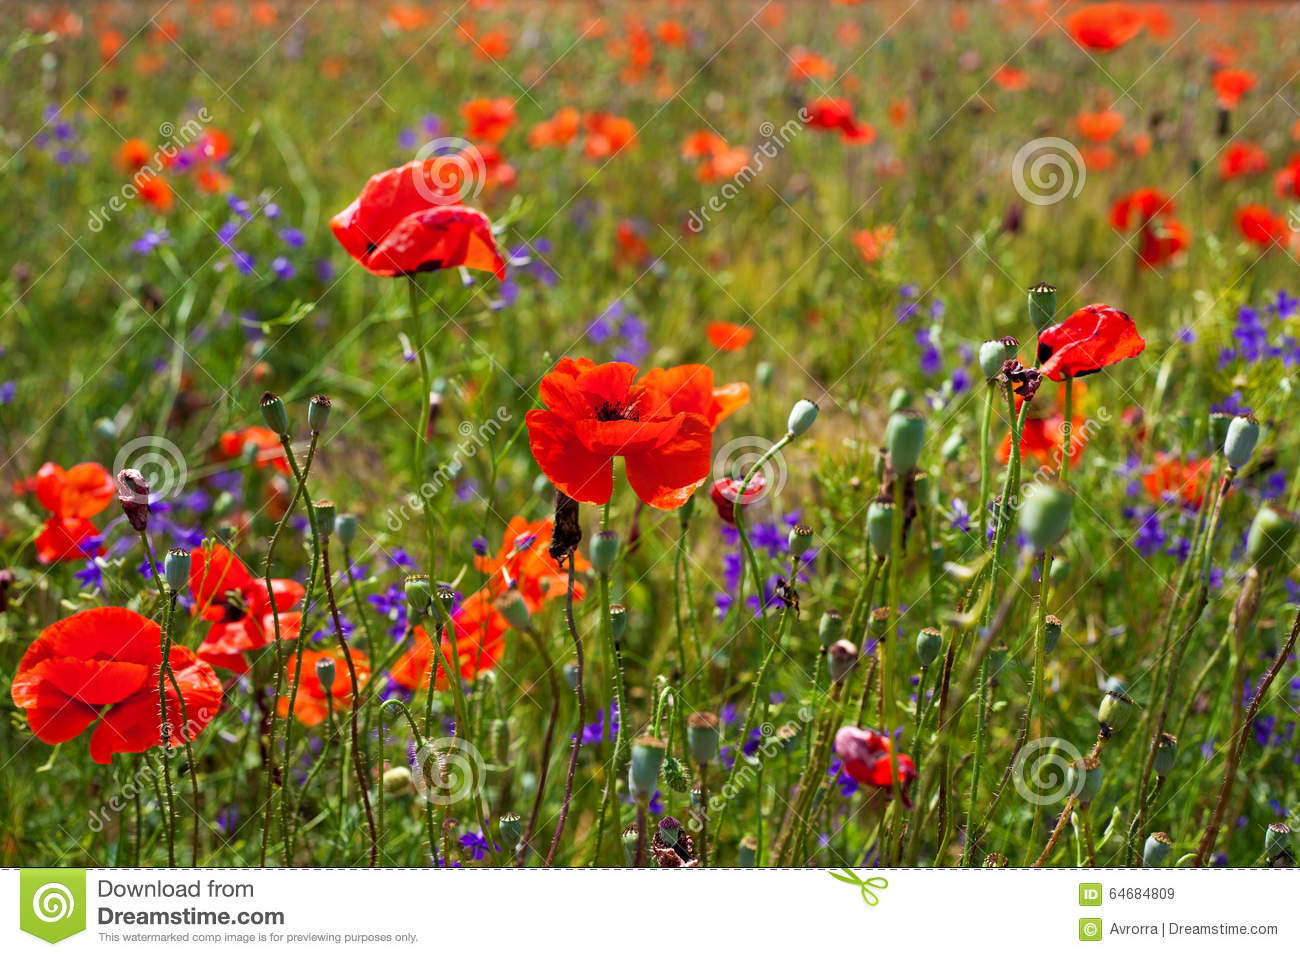 bright red flowers field - photo #6